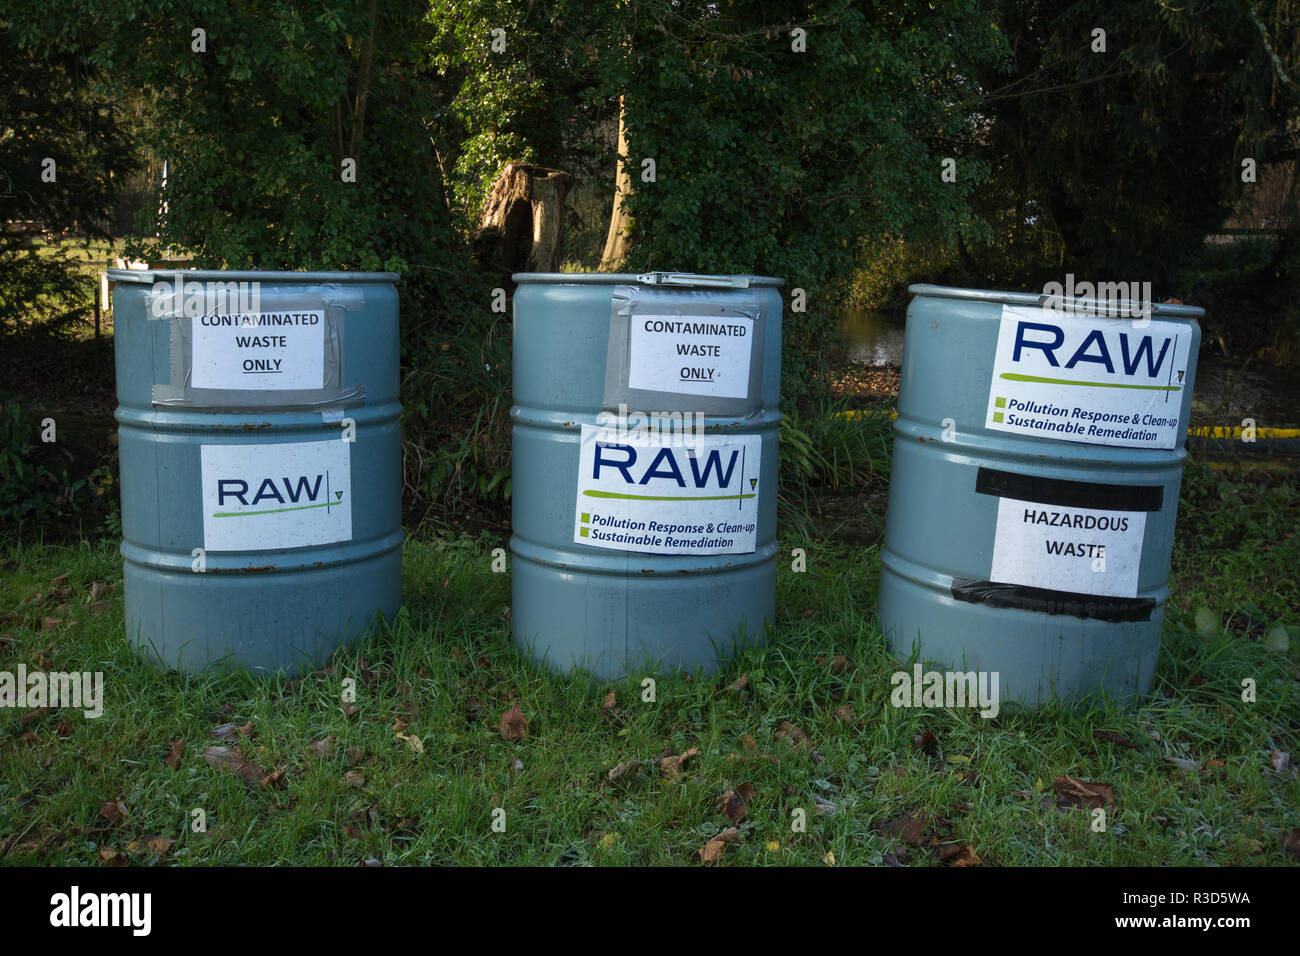 Contaminated waste containers, RAW, specialists in inland pollution spill or spills response and remediation, next to the river Meon in Hampshire, UK - Stock Image